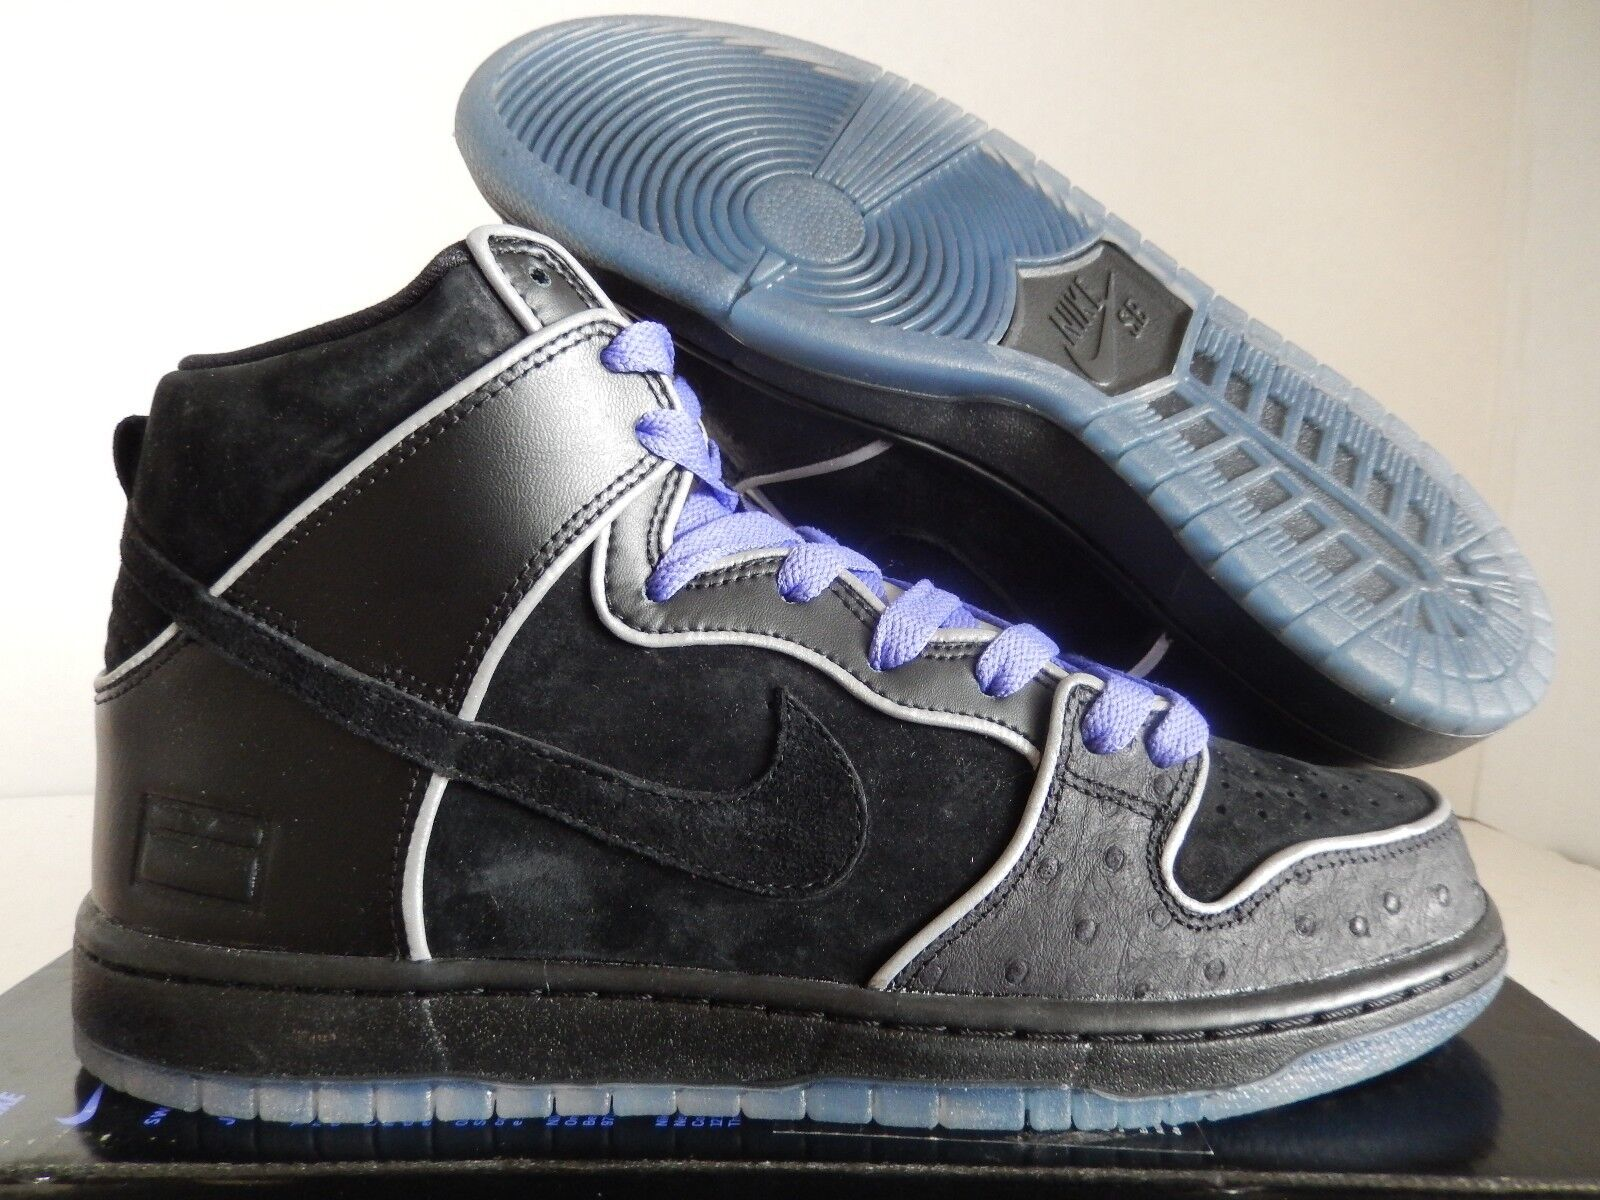 NIKE DUNK HIGH SZ ELITE SB BLACK-BLACK-WHITE-PURPLE HAZE SZ HIGH 9.5 [833456-002] e36816